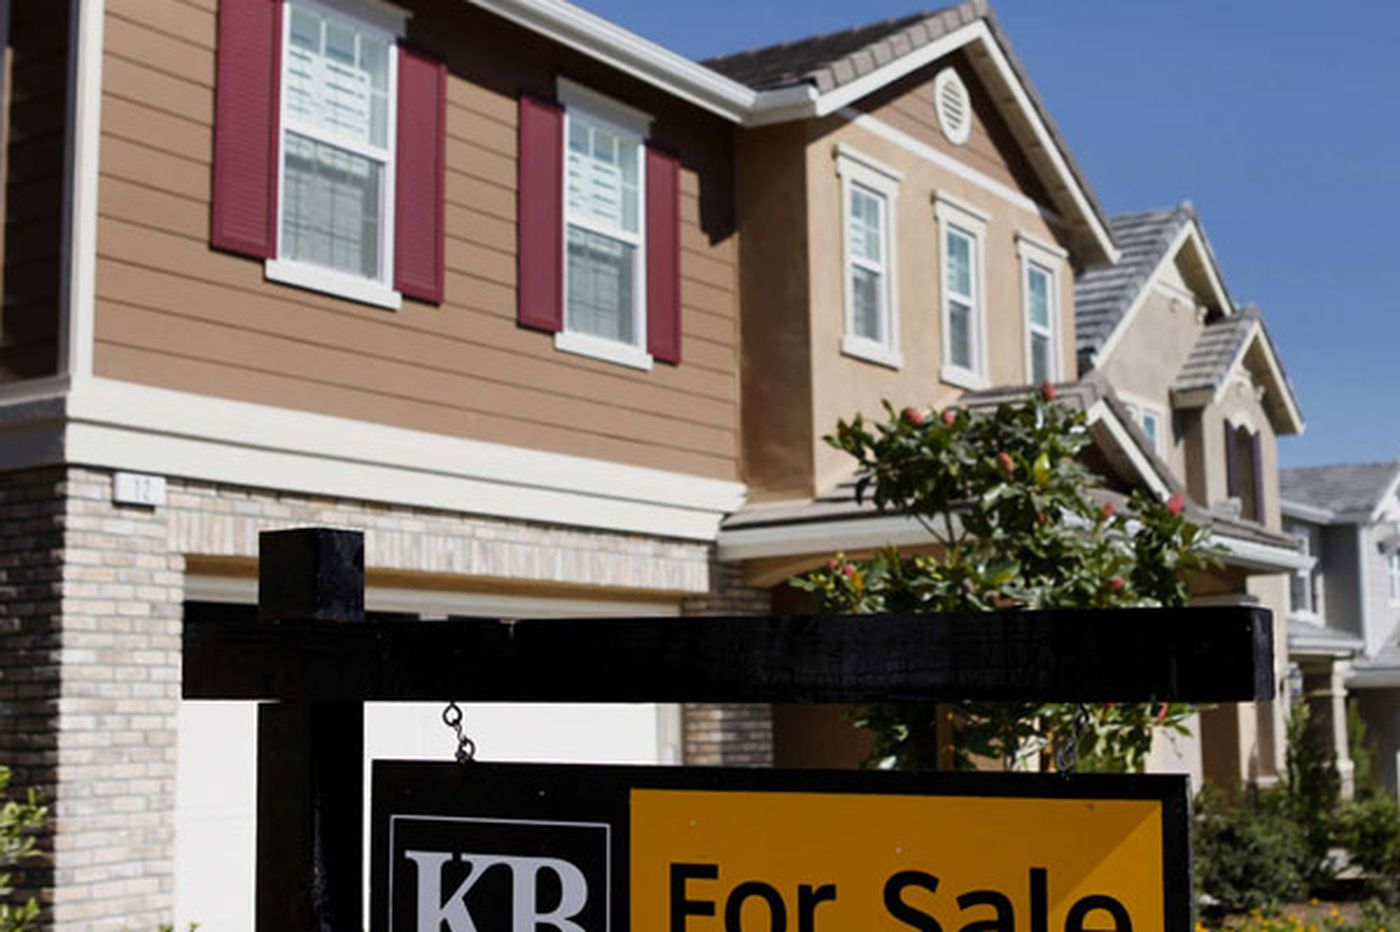 On the House: Some analysts fear housing is losing steam